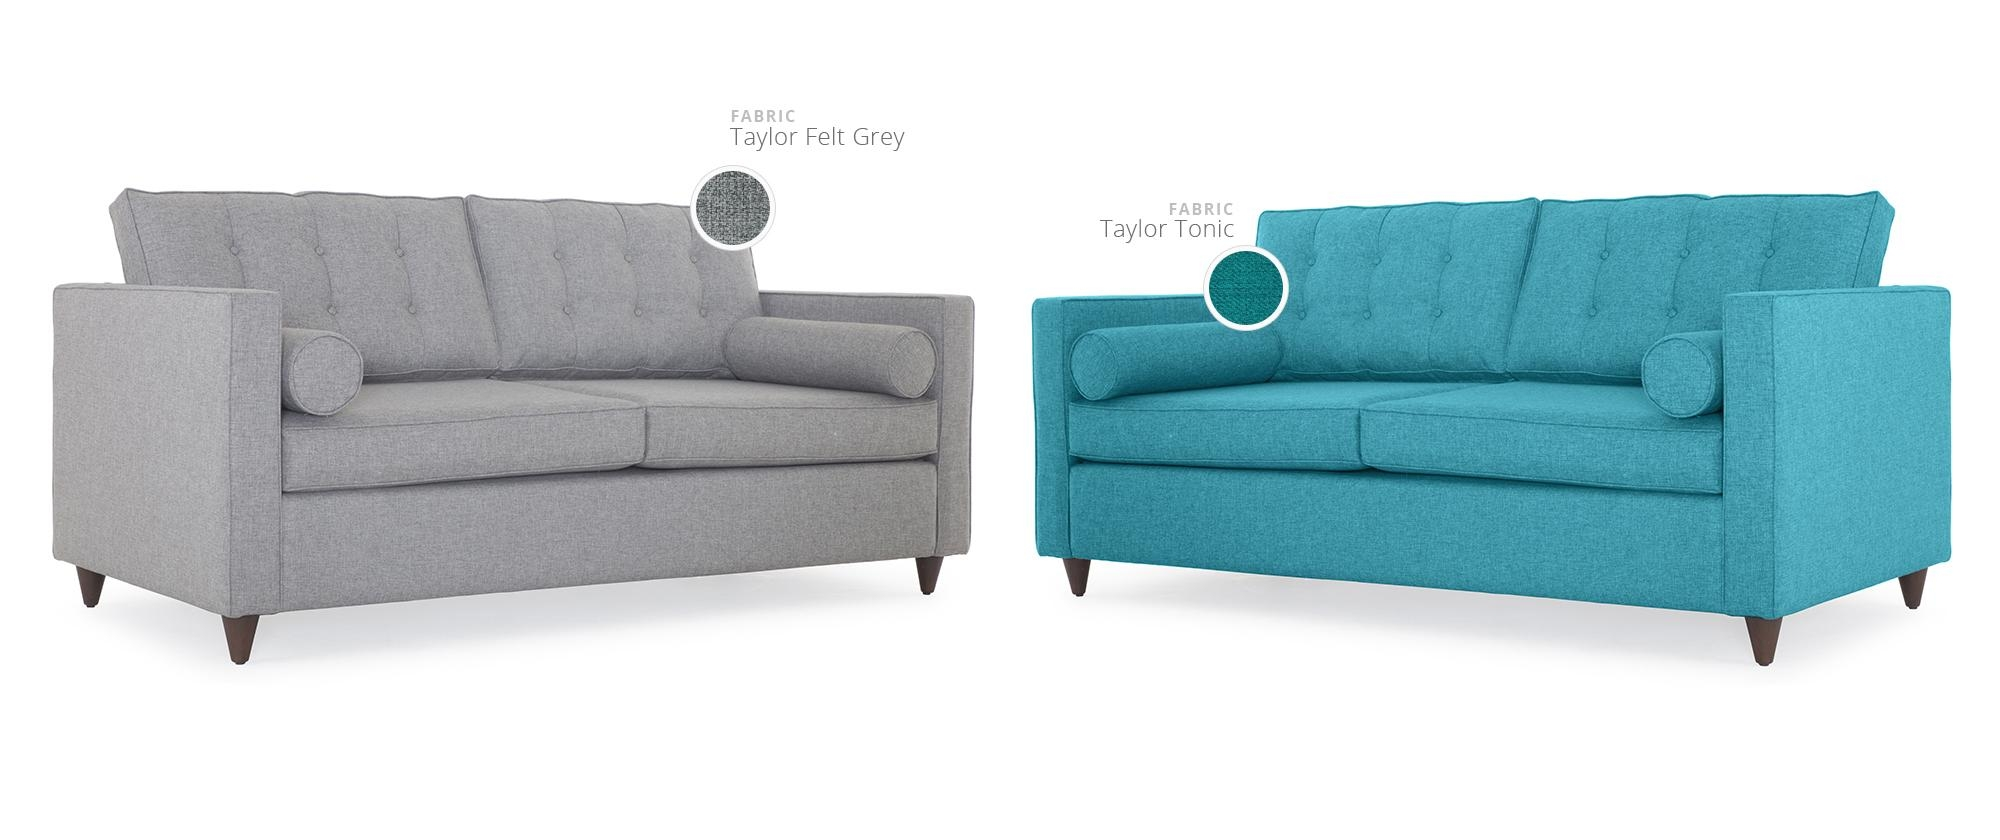 Braxton Sleeper Sofa | Joybird Pertaining To Braxton Sofa (View 11 of 20)